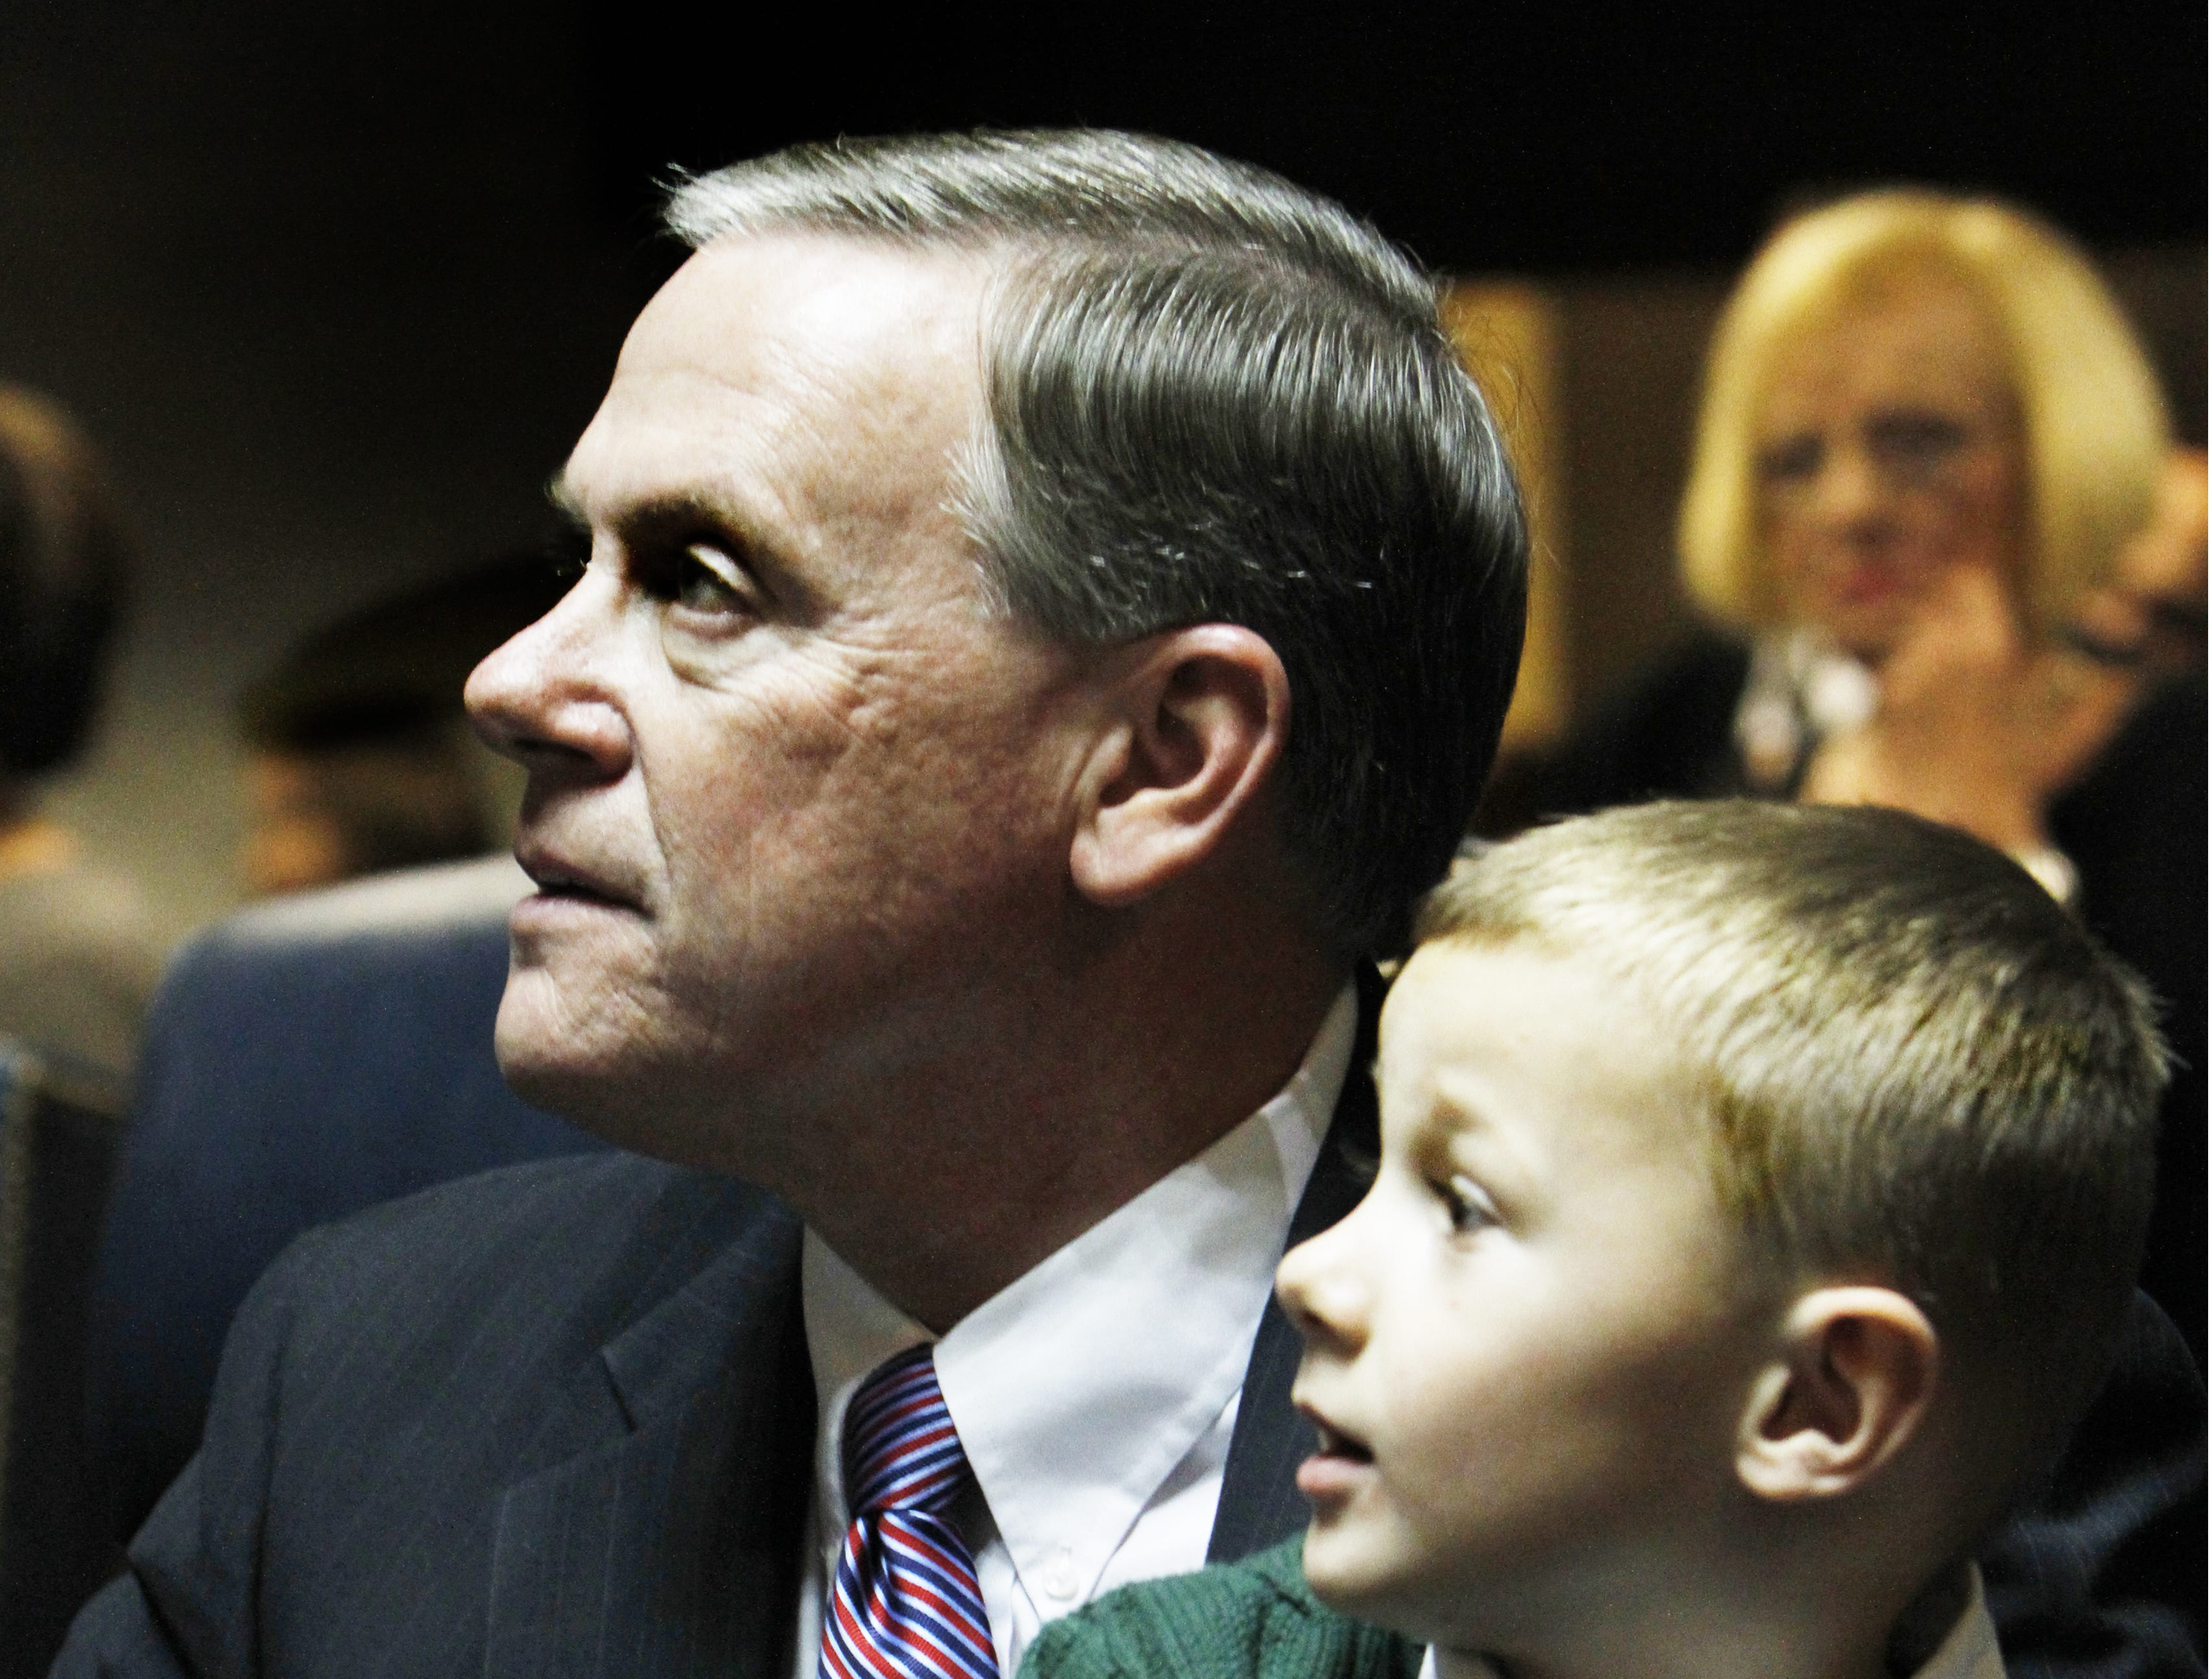 Freshman Sen. Doug Eckerty, R-Muncie, holds grandson Jayden Eschler, 5, on his lap after being sworn in during Organization Day at the Indiana Statehouse on Tuesday, November 16, 2010. Charlie Nye / The Star.